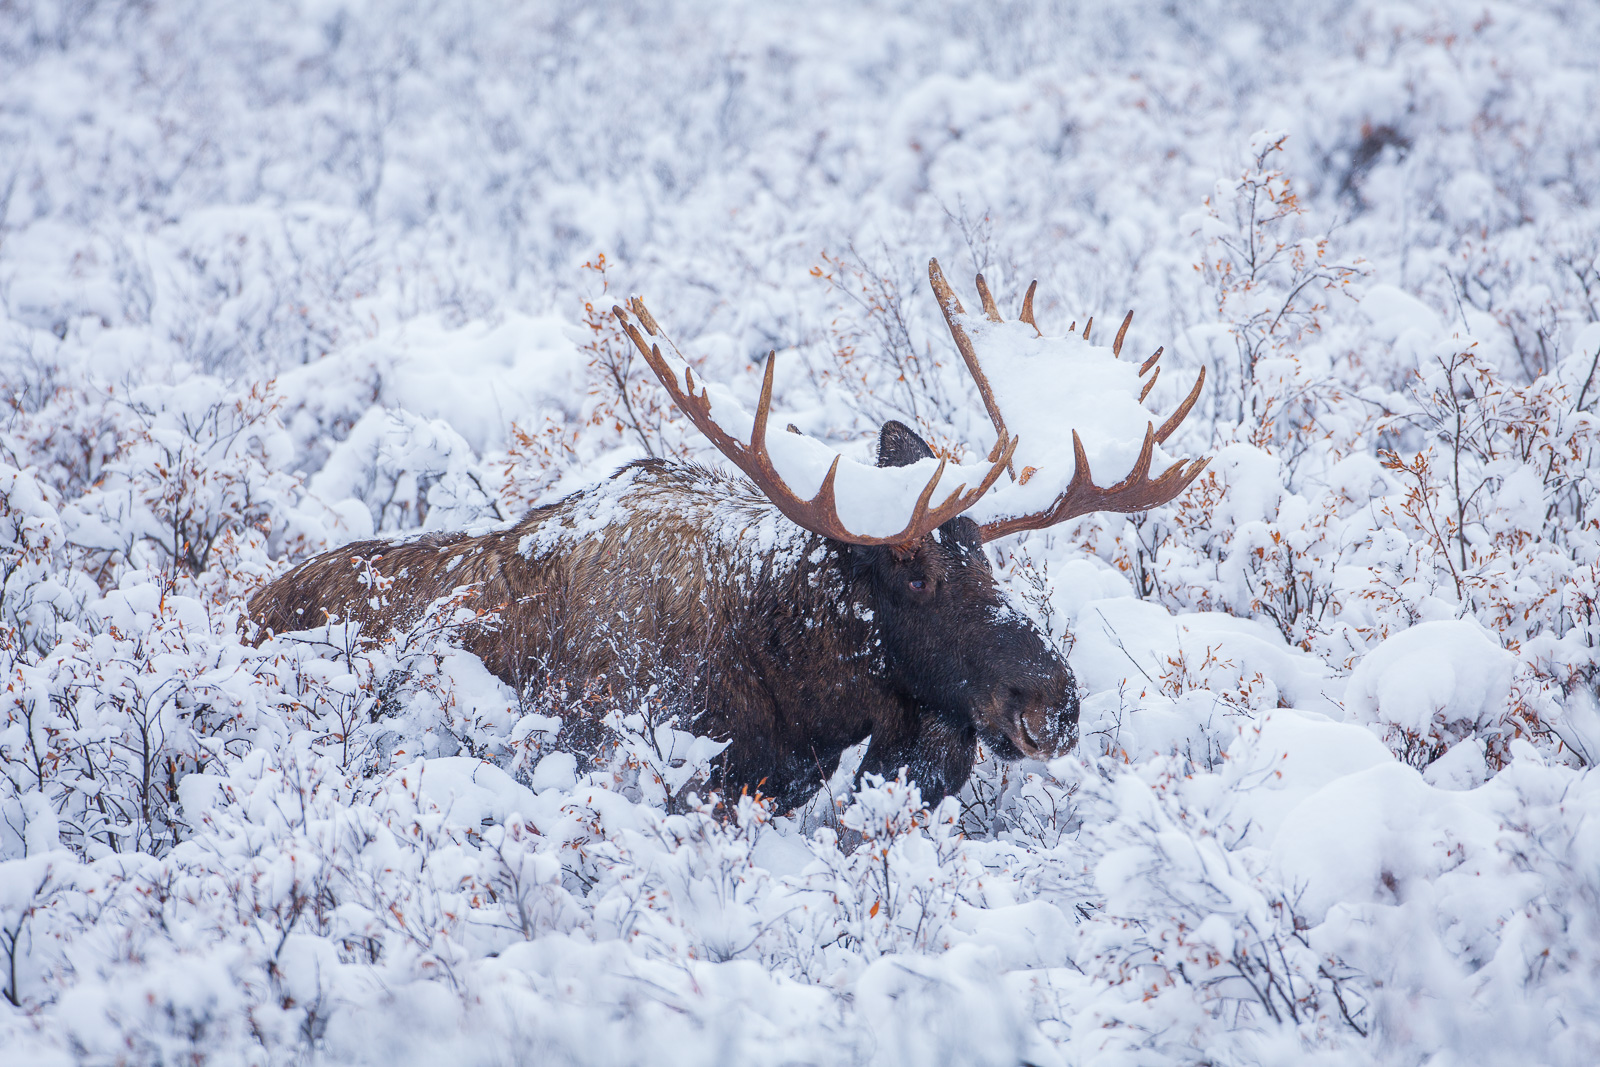 Snowplow, Fall, , Moose, Snow, , Wildlife, Denali National Park, Alaska, photo